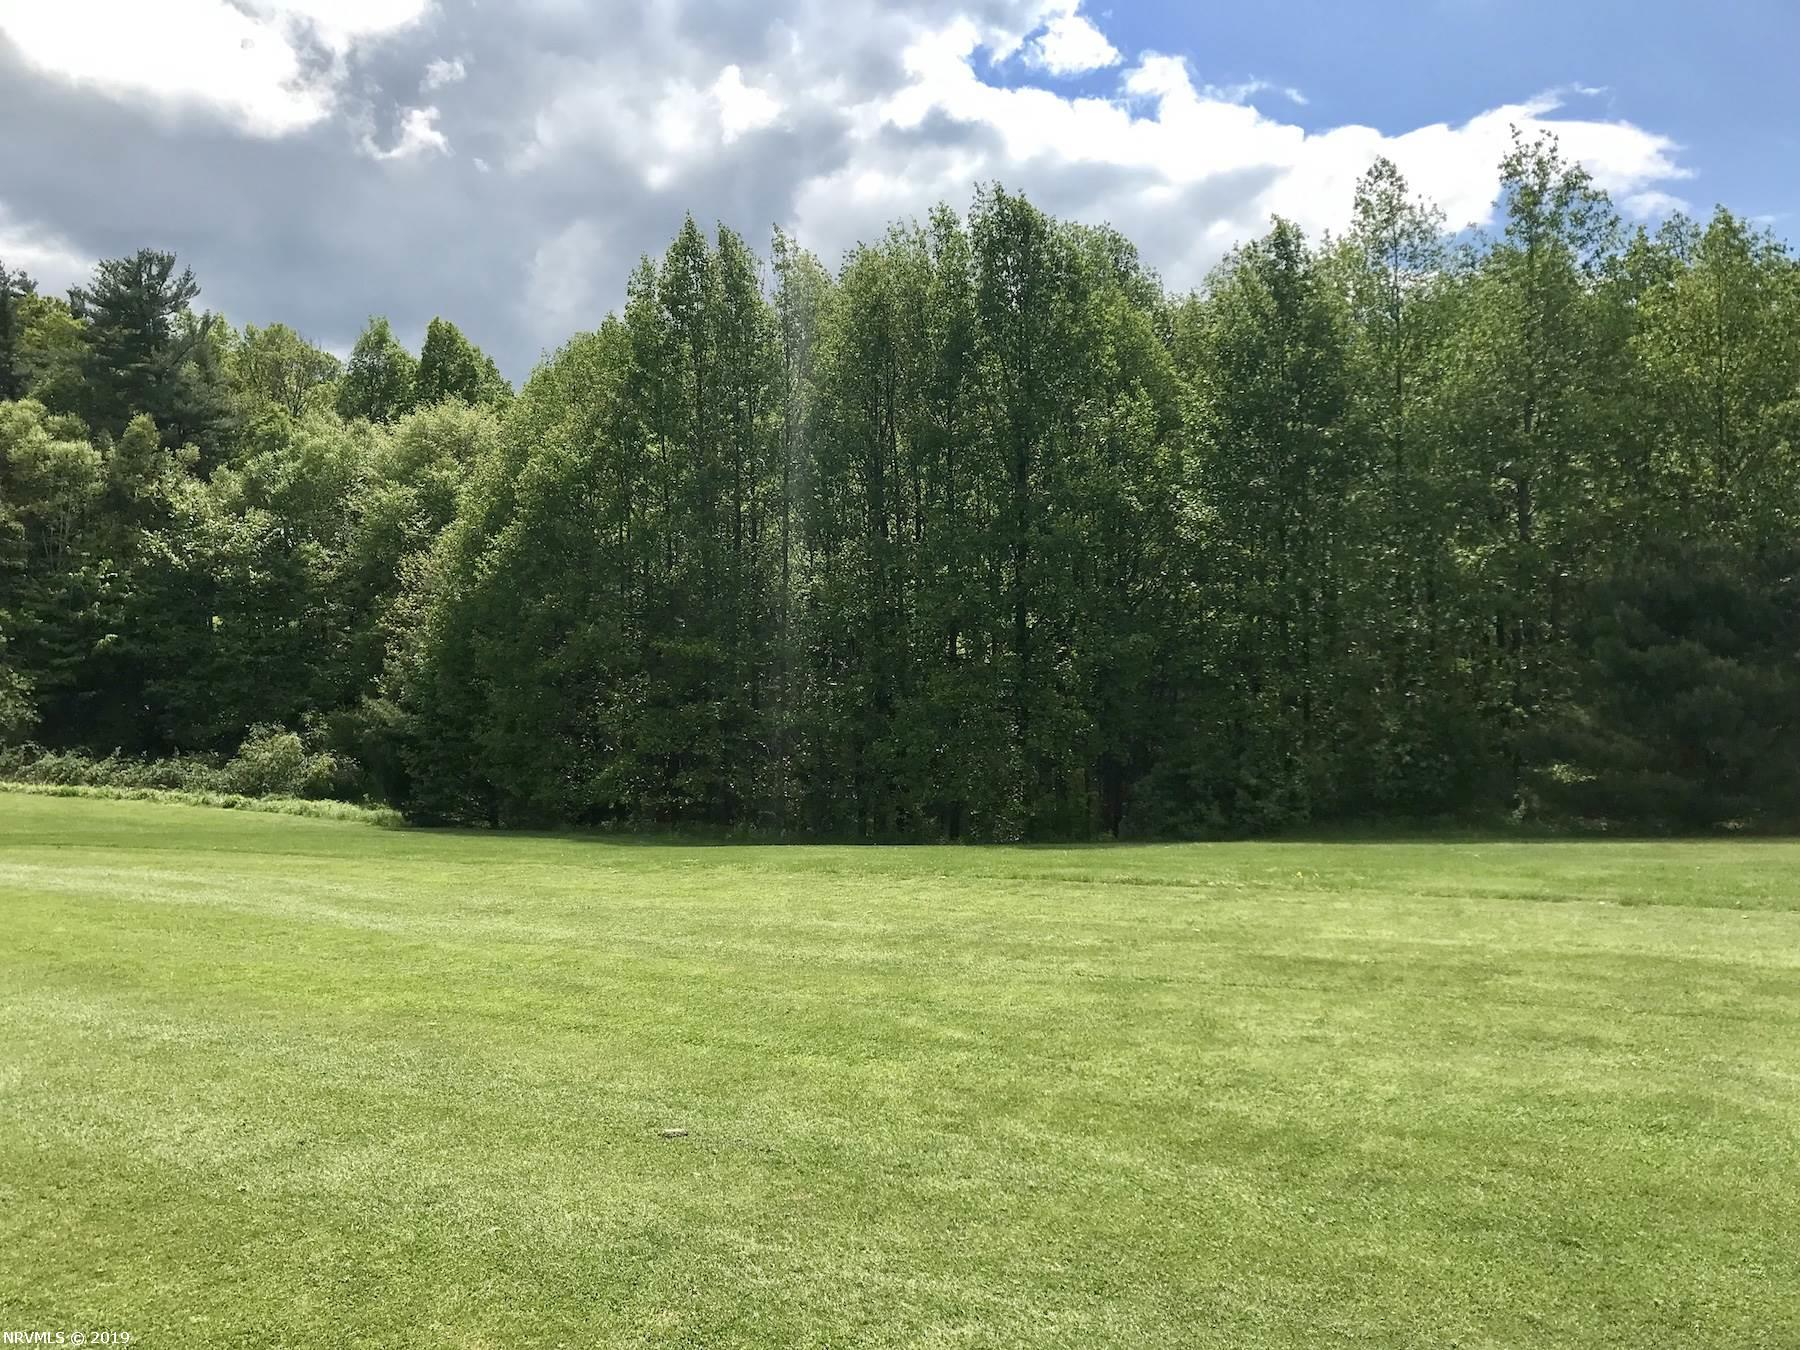 Great little lot slightly under an acre located in Fancy Gap VA. Property backs up to the #10 Fairway on the Skyland Lakes Golf Club. Lot is wooded, but would be a great spot for a home, just needs some clearing. Lot also has a small brook stream running through.